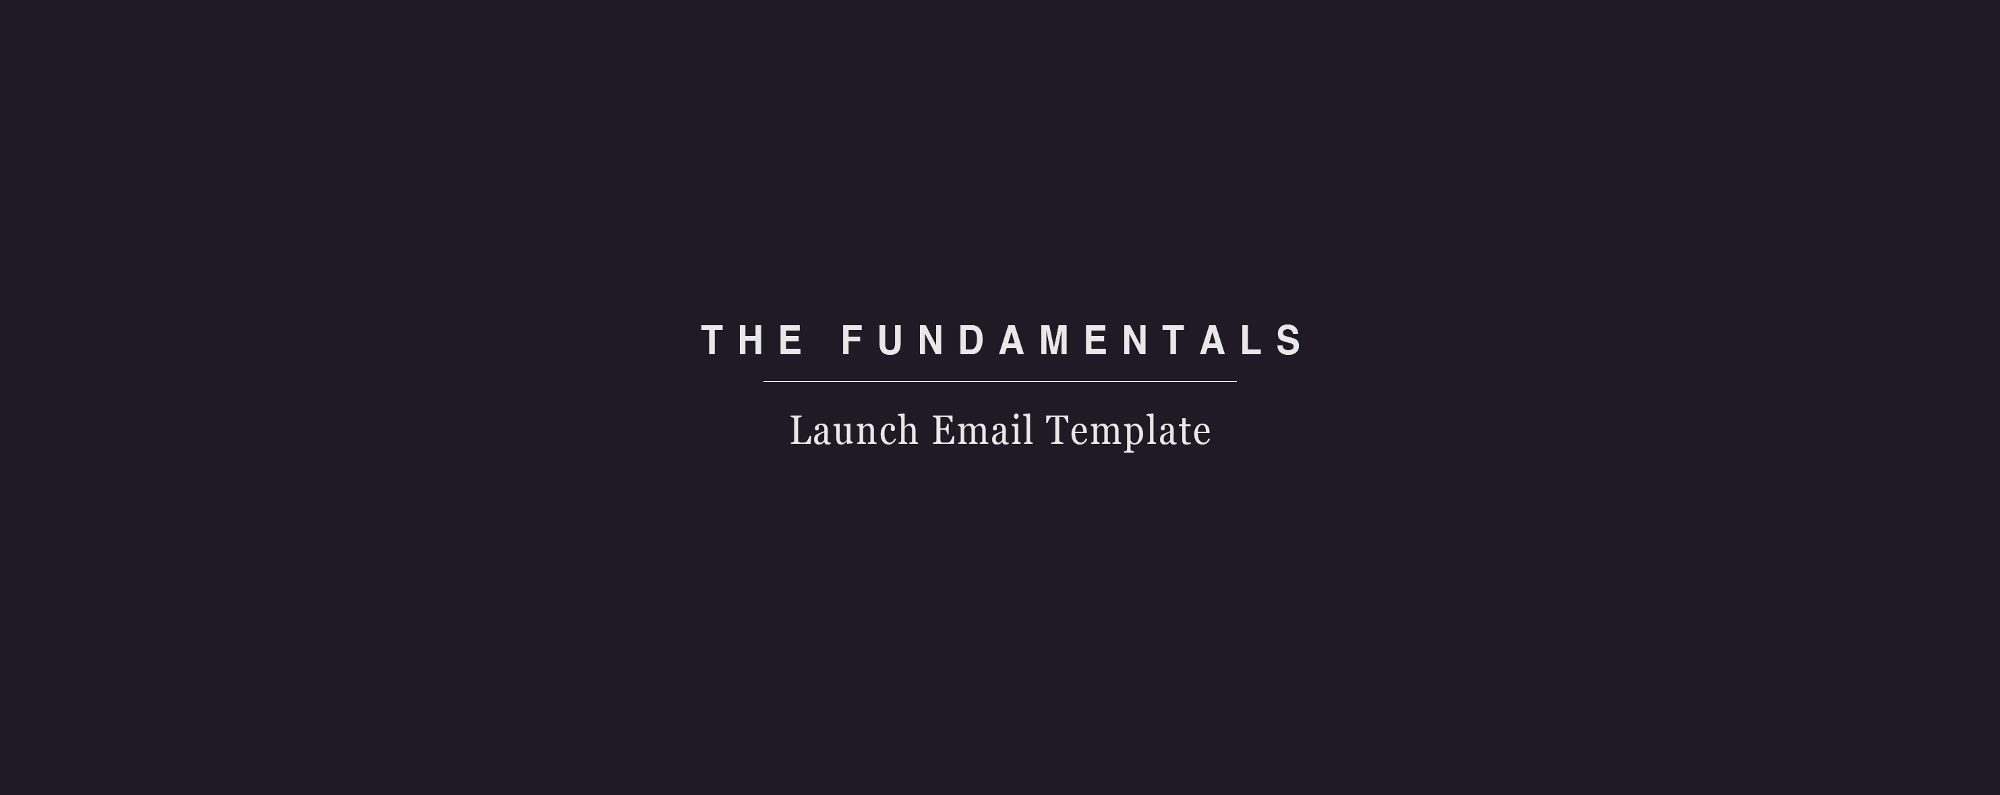 Product launch email template the fundamentals medium product launch email template stopboris Gallery